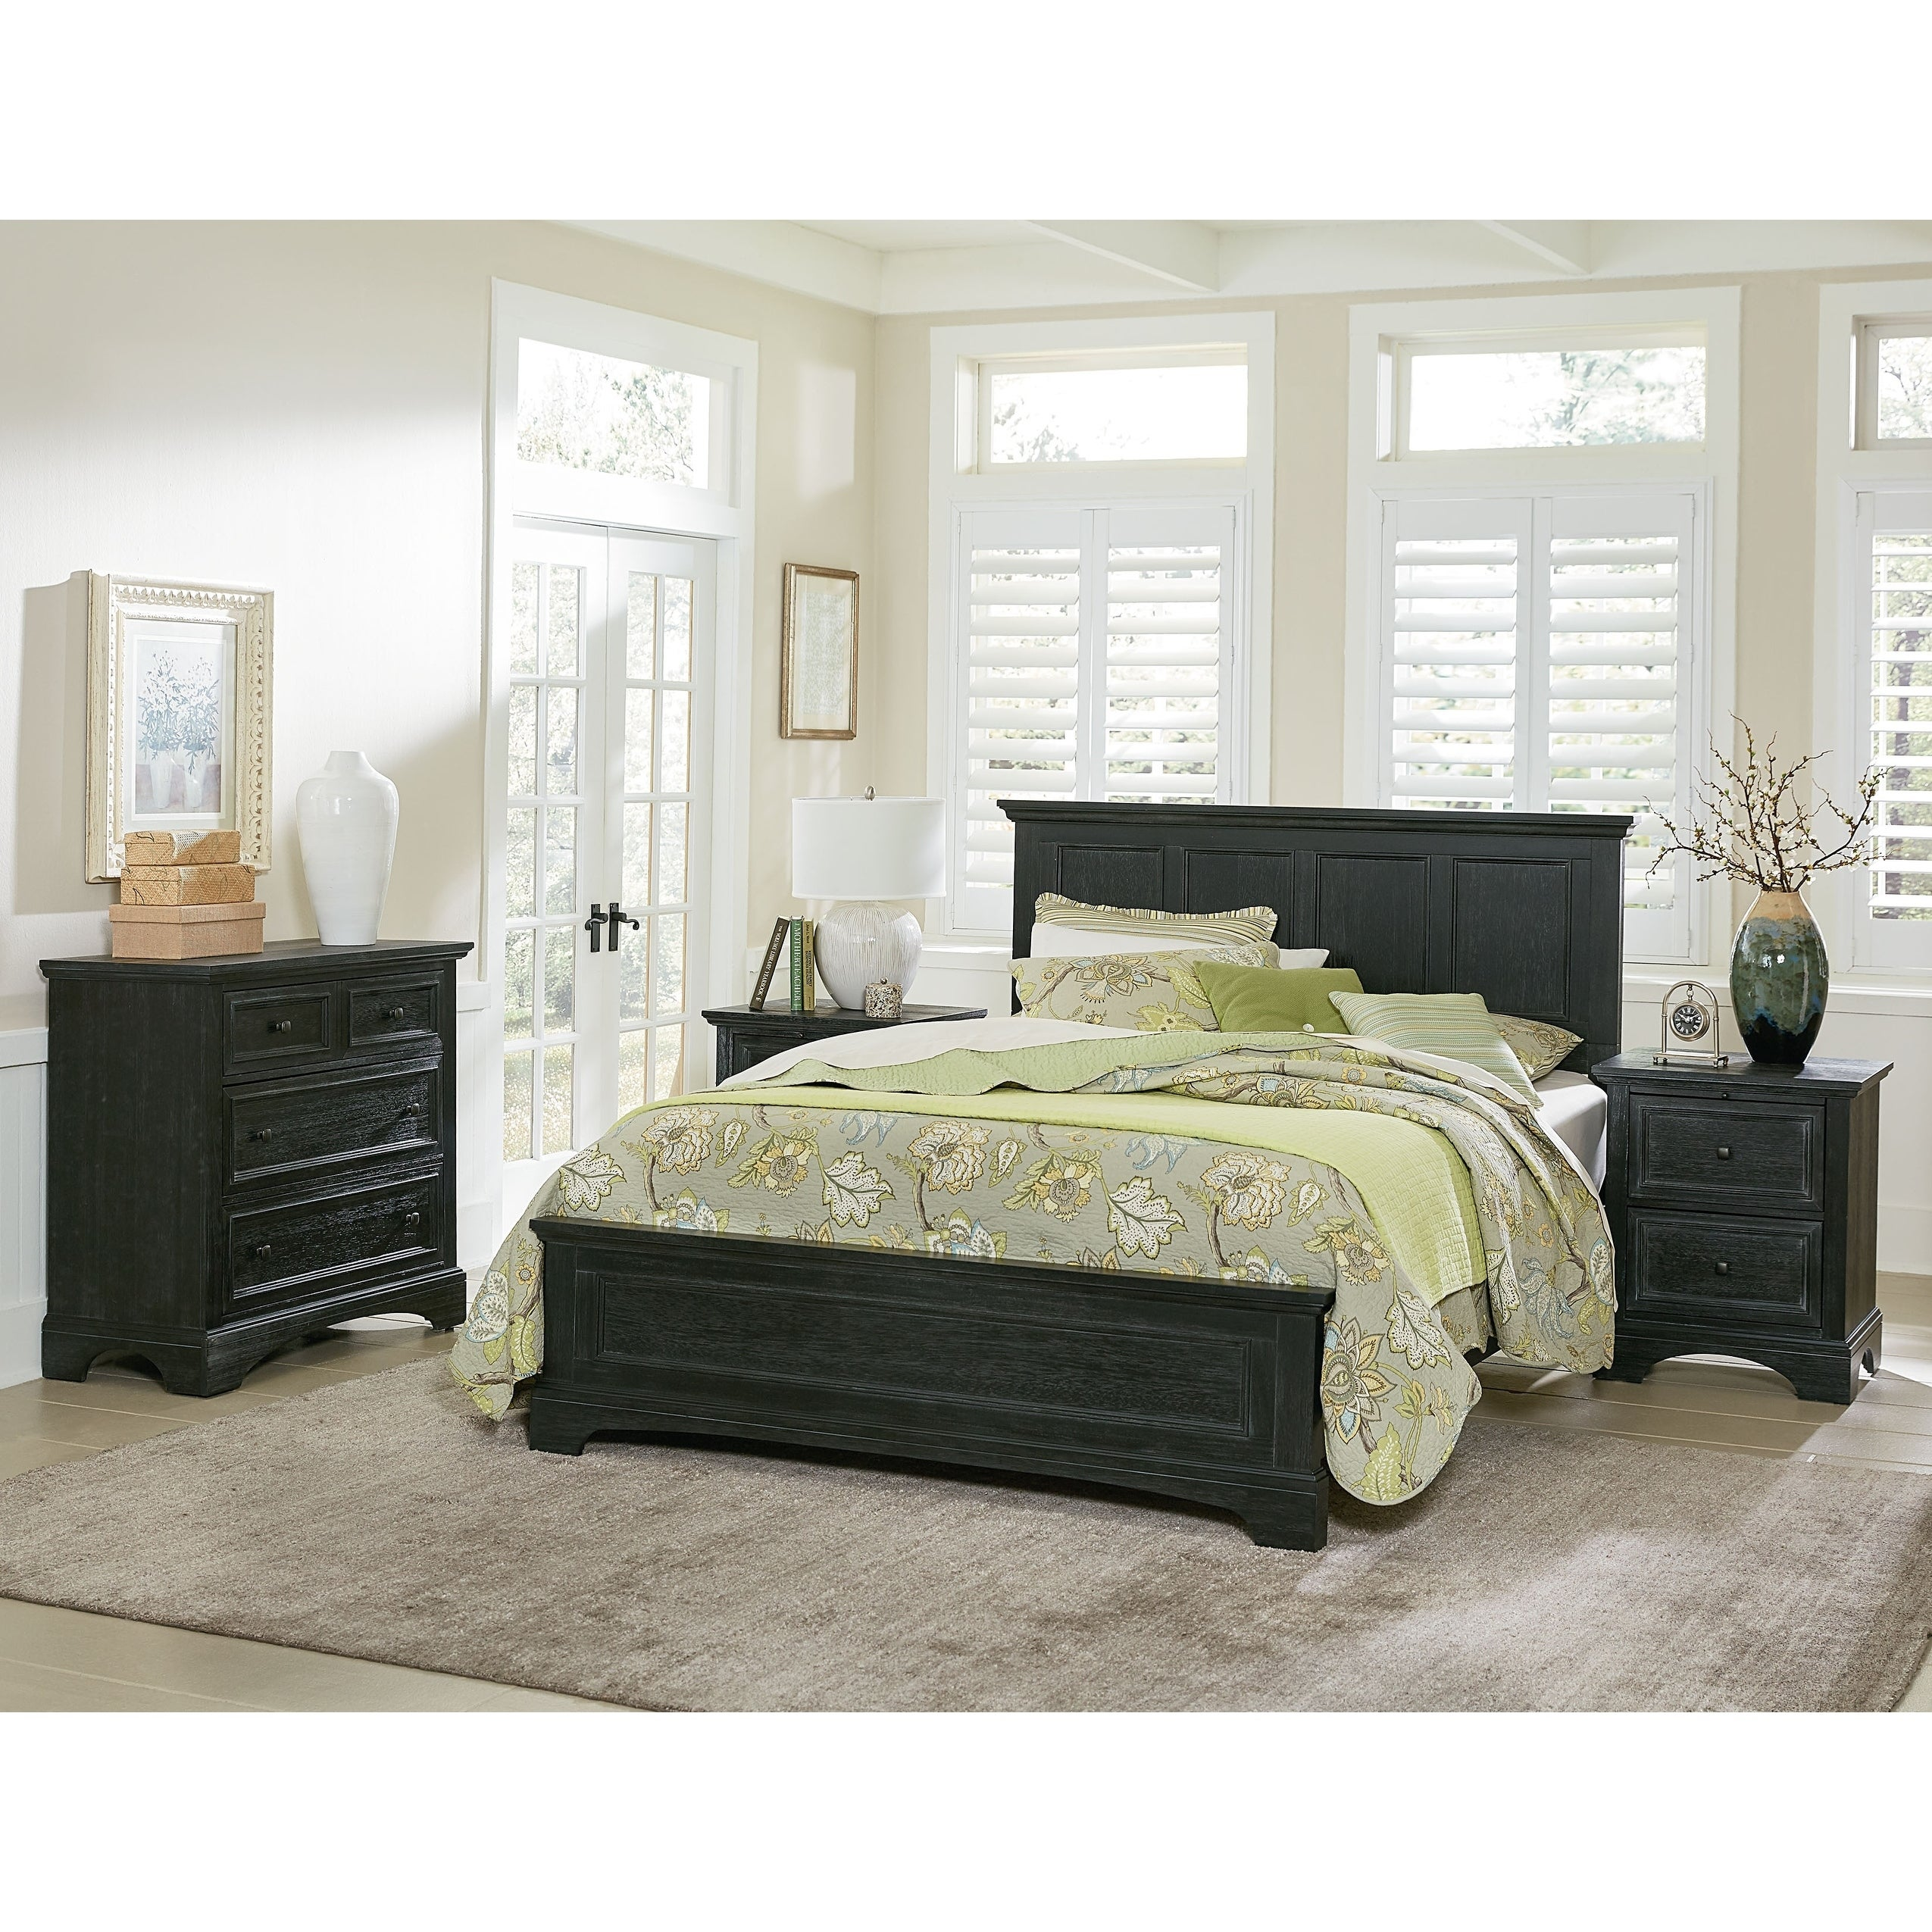 OSP Home Furnishings Farmhouse Basics King Bedroom Set with 2 Nightstands,  1 Vanity and Bench, and 1 Chest